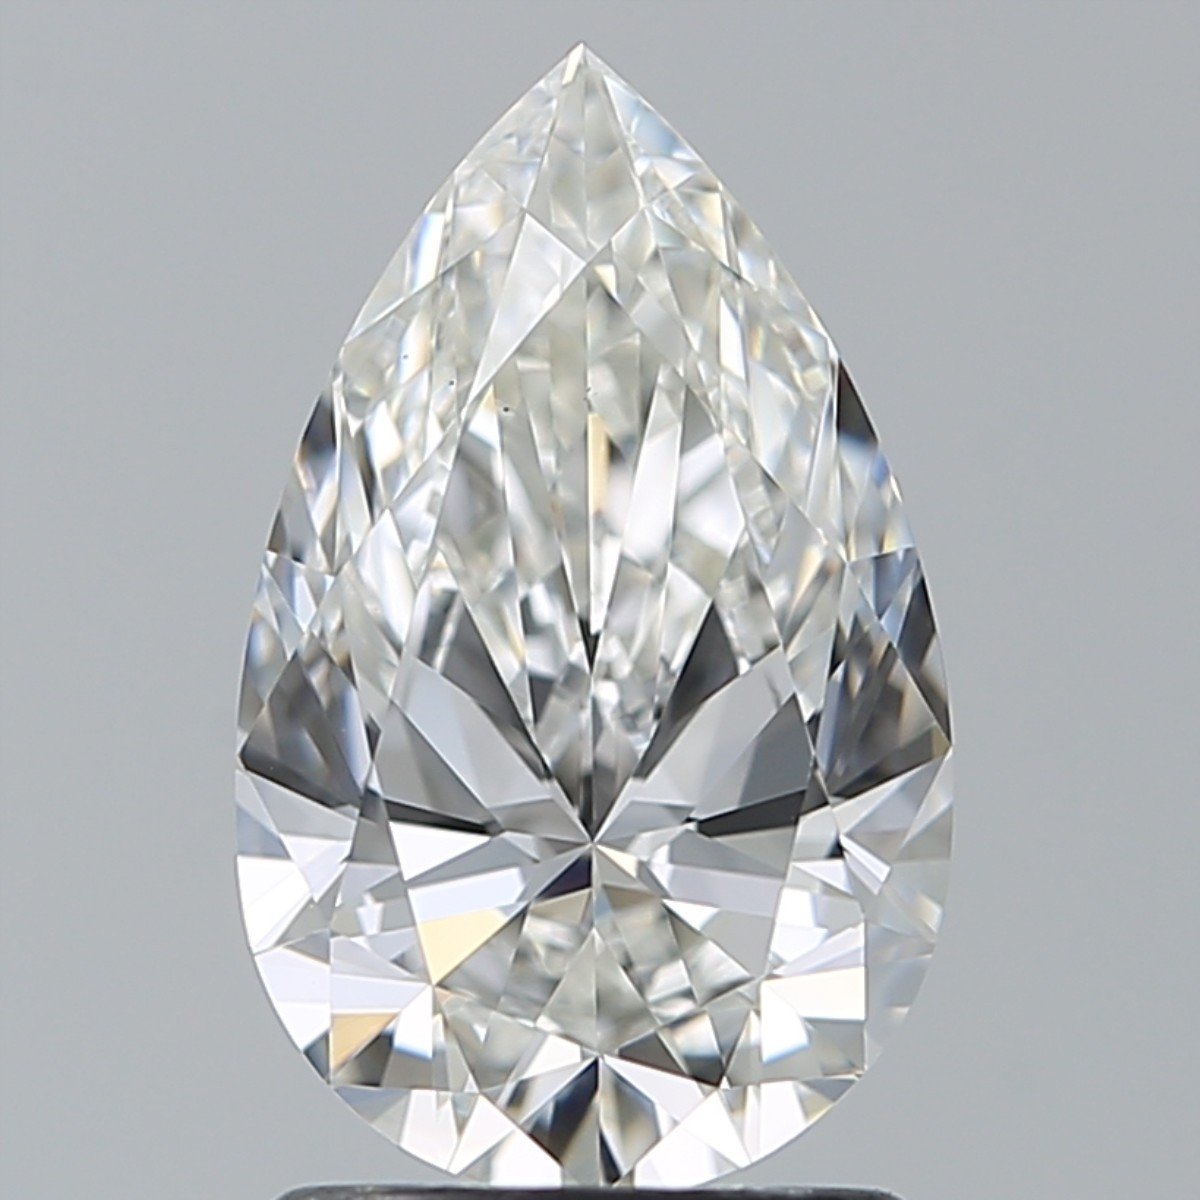 1.52 Carat Pear Diamond (G/VS1)